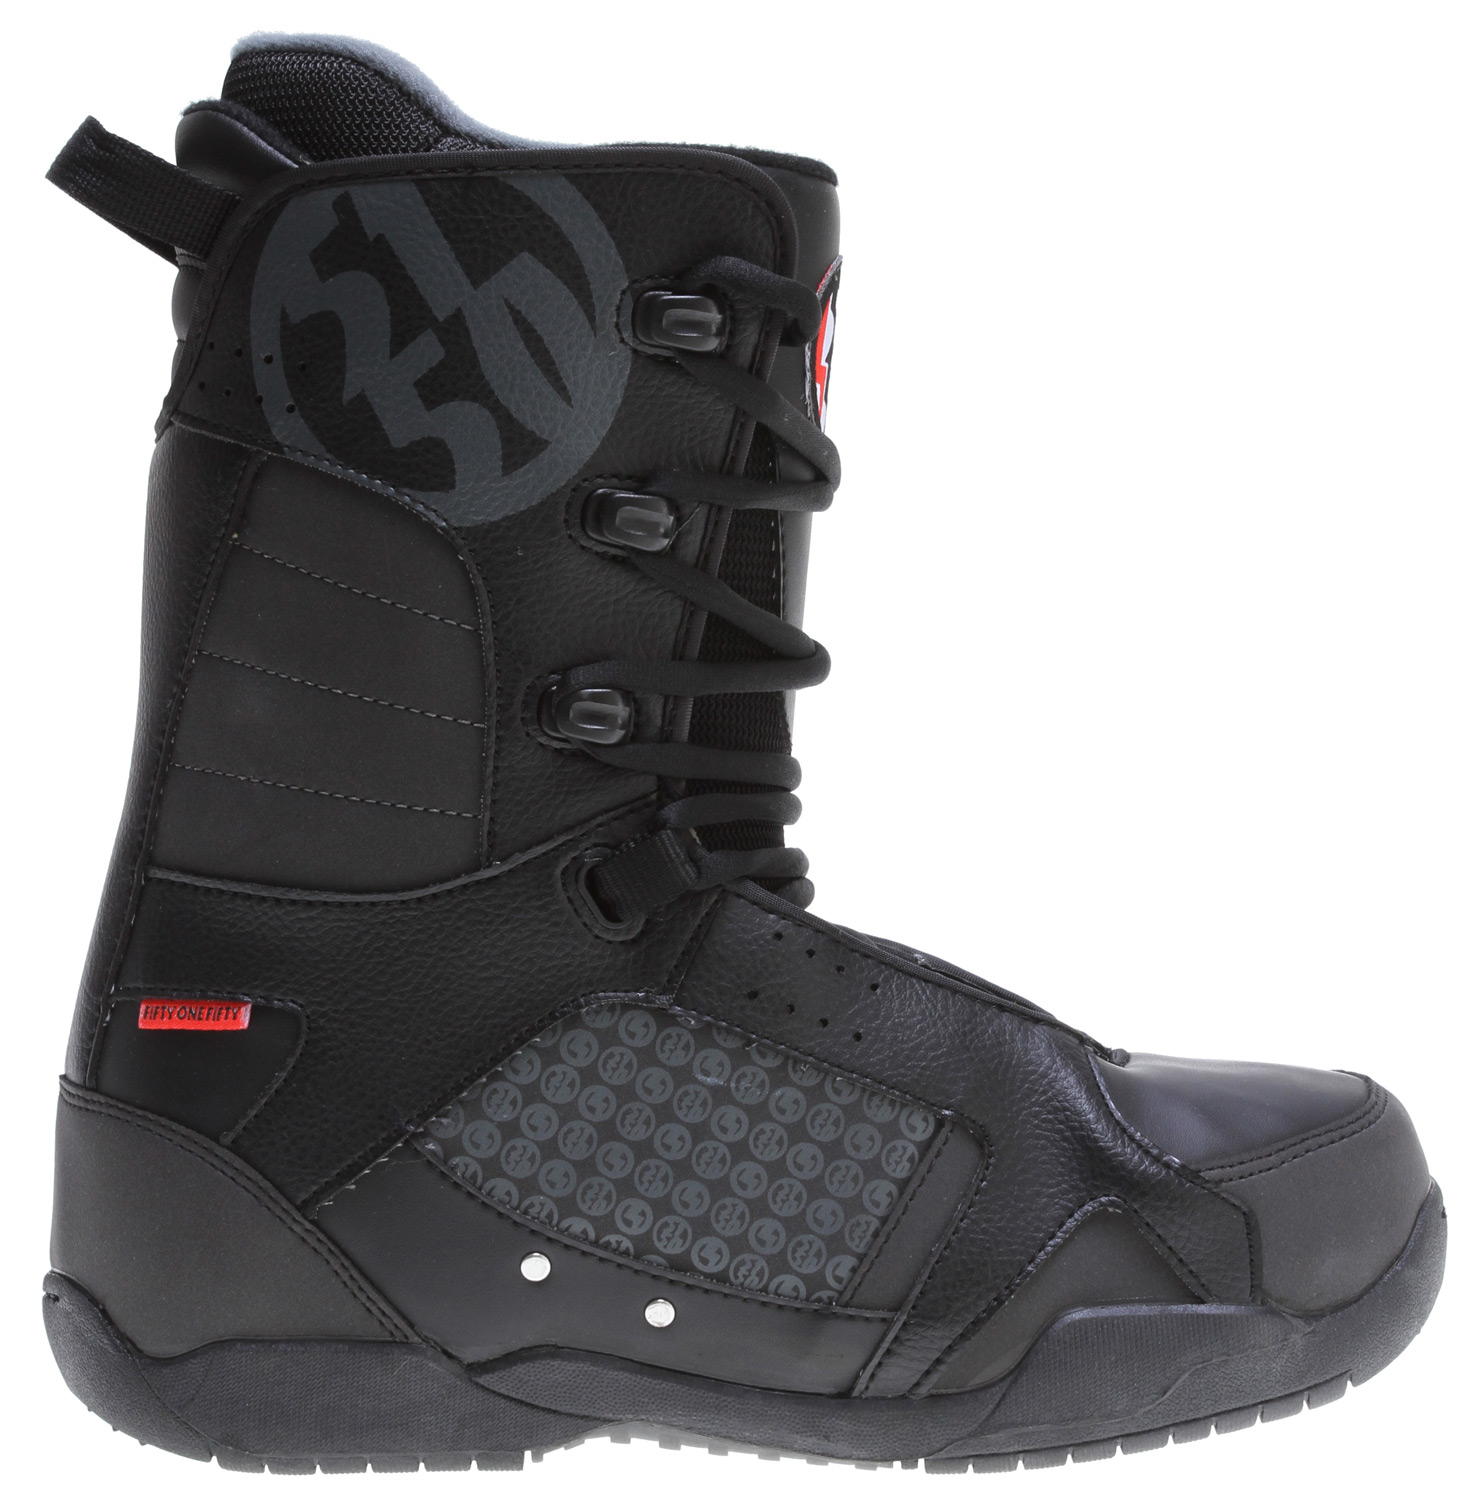 Snowboard You would pay double for boots this good, but you do not have to! The Path CTS outsole provides cushion and traction, while the Powerfit liner features ergonomic warmth and support to keep your feet comfortable all day. Designed for all-mountain riding.Key Features of the 5150 Squadron Snowboard Boots: Path CTS Outsole with durable Rubber for a grip that will not slip PowerFit Liner with Lace Lock and Removable Insole Fitted Ankle Pocket with heel hold pads Rugged Waterproof Synthetic Leather Body Construction Webbing Lace Loops with Speed Hooks for easy lacing Multi-Zone Ankle Flex Points - $73.85